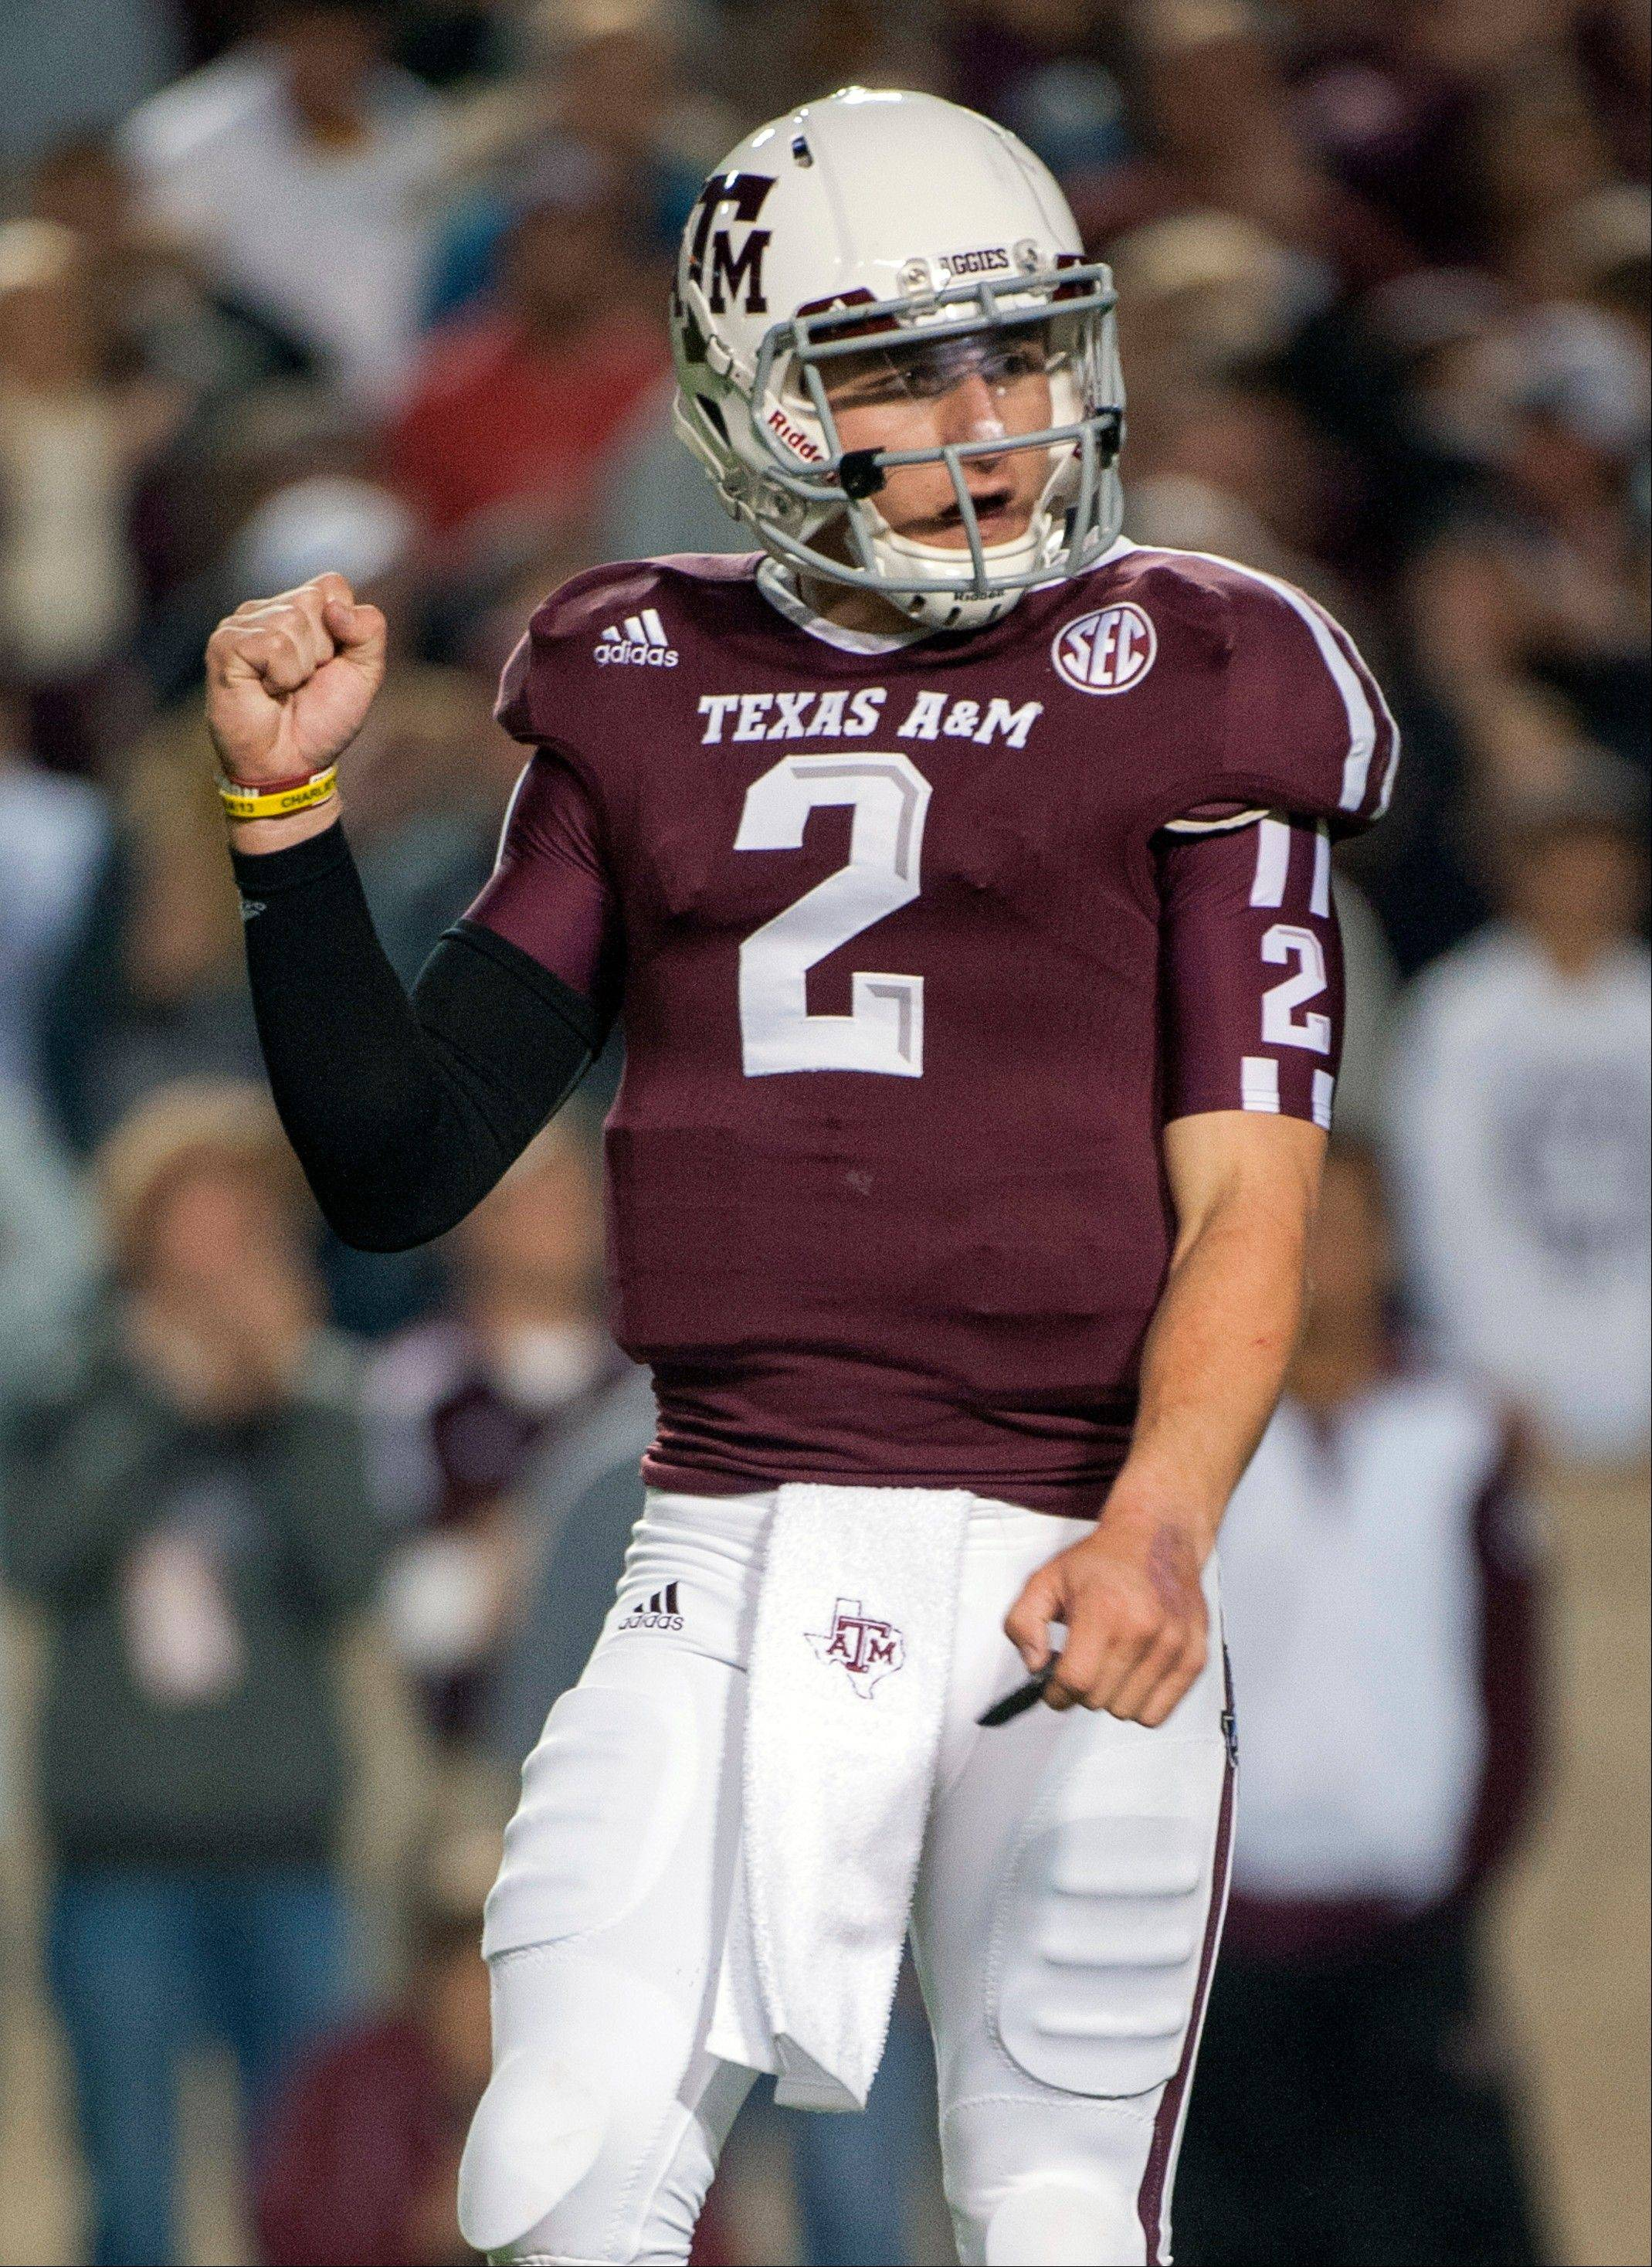 Texas A&M quarterback Johnny Manziel reacts after a touchdown run by teammate Ben Malena during the first quarter an NCAA college football game against Missouri, Saturday, Nov. 24, 2012, in College Station, Texas. Manziel, aka Johnny Football, spoke to the media for the first time this season.